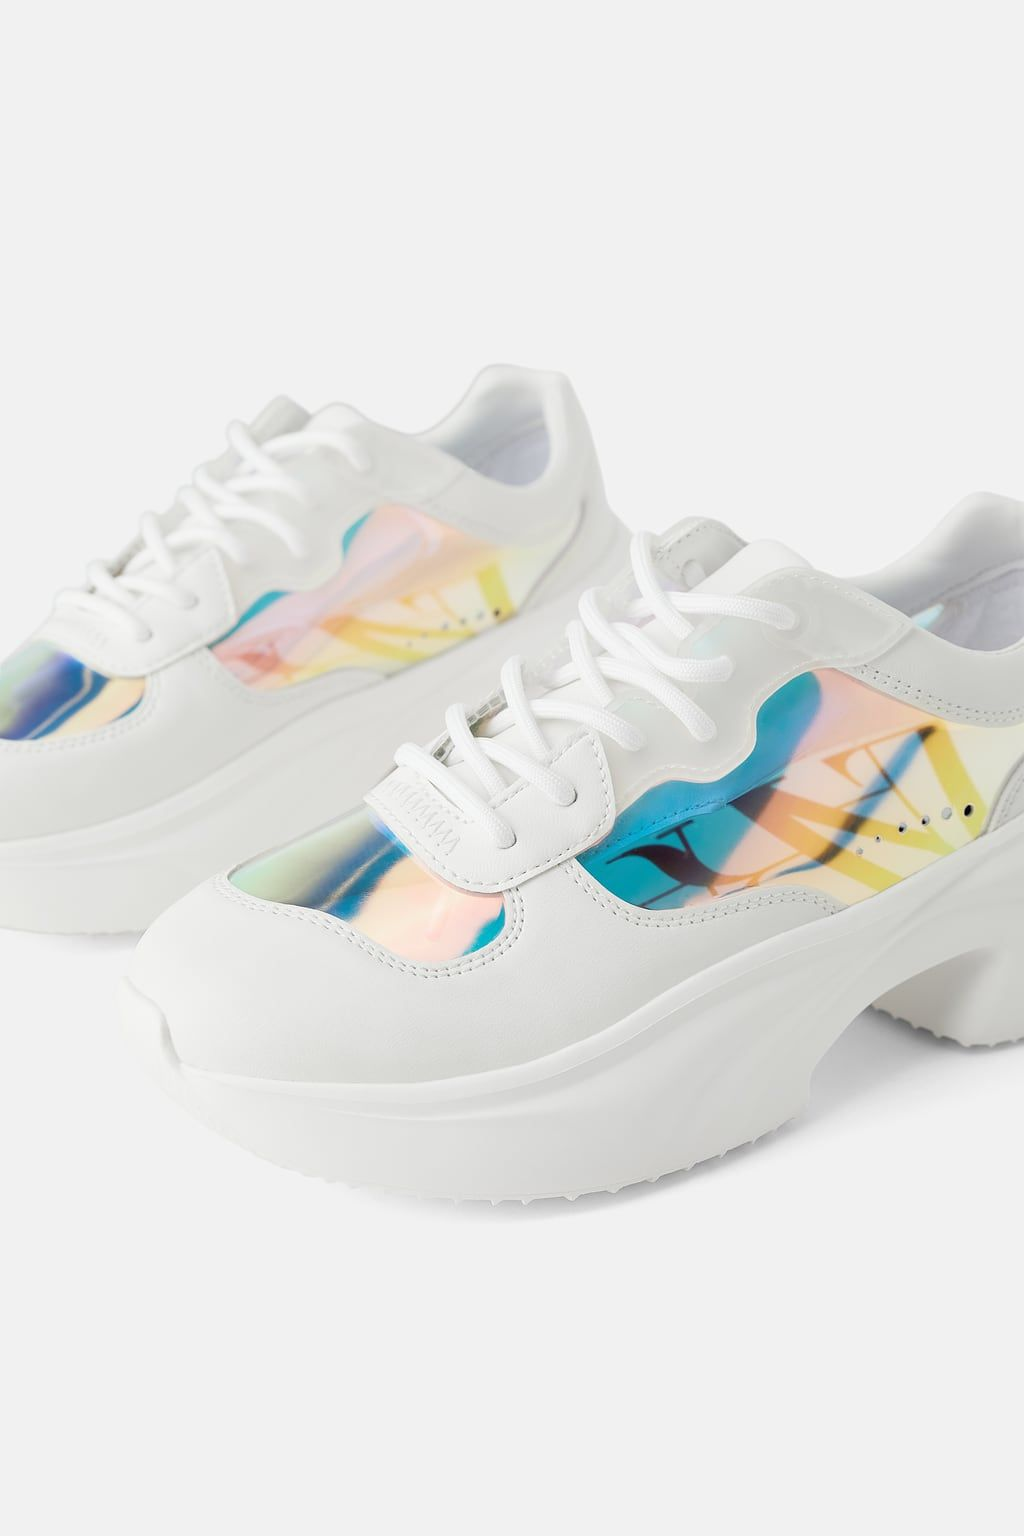 Iridescent Sneakers View All Shoes Woman Zara Philippines Zara Sneakers Sneakers Womens Shoes Sneakers